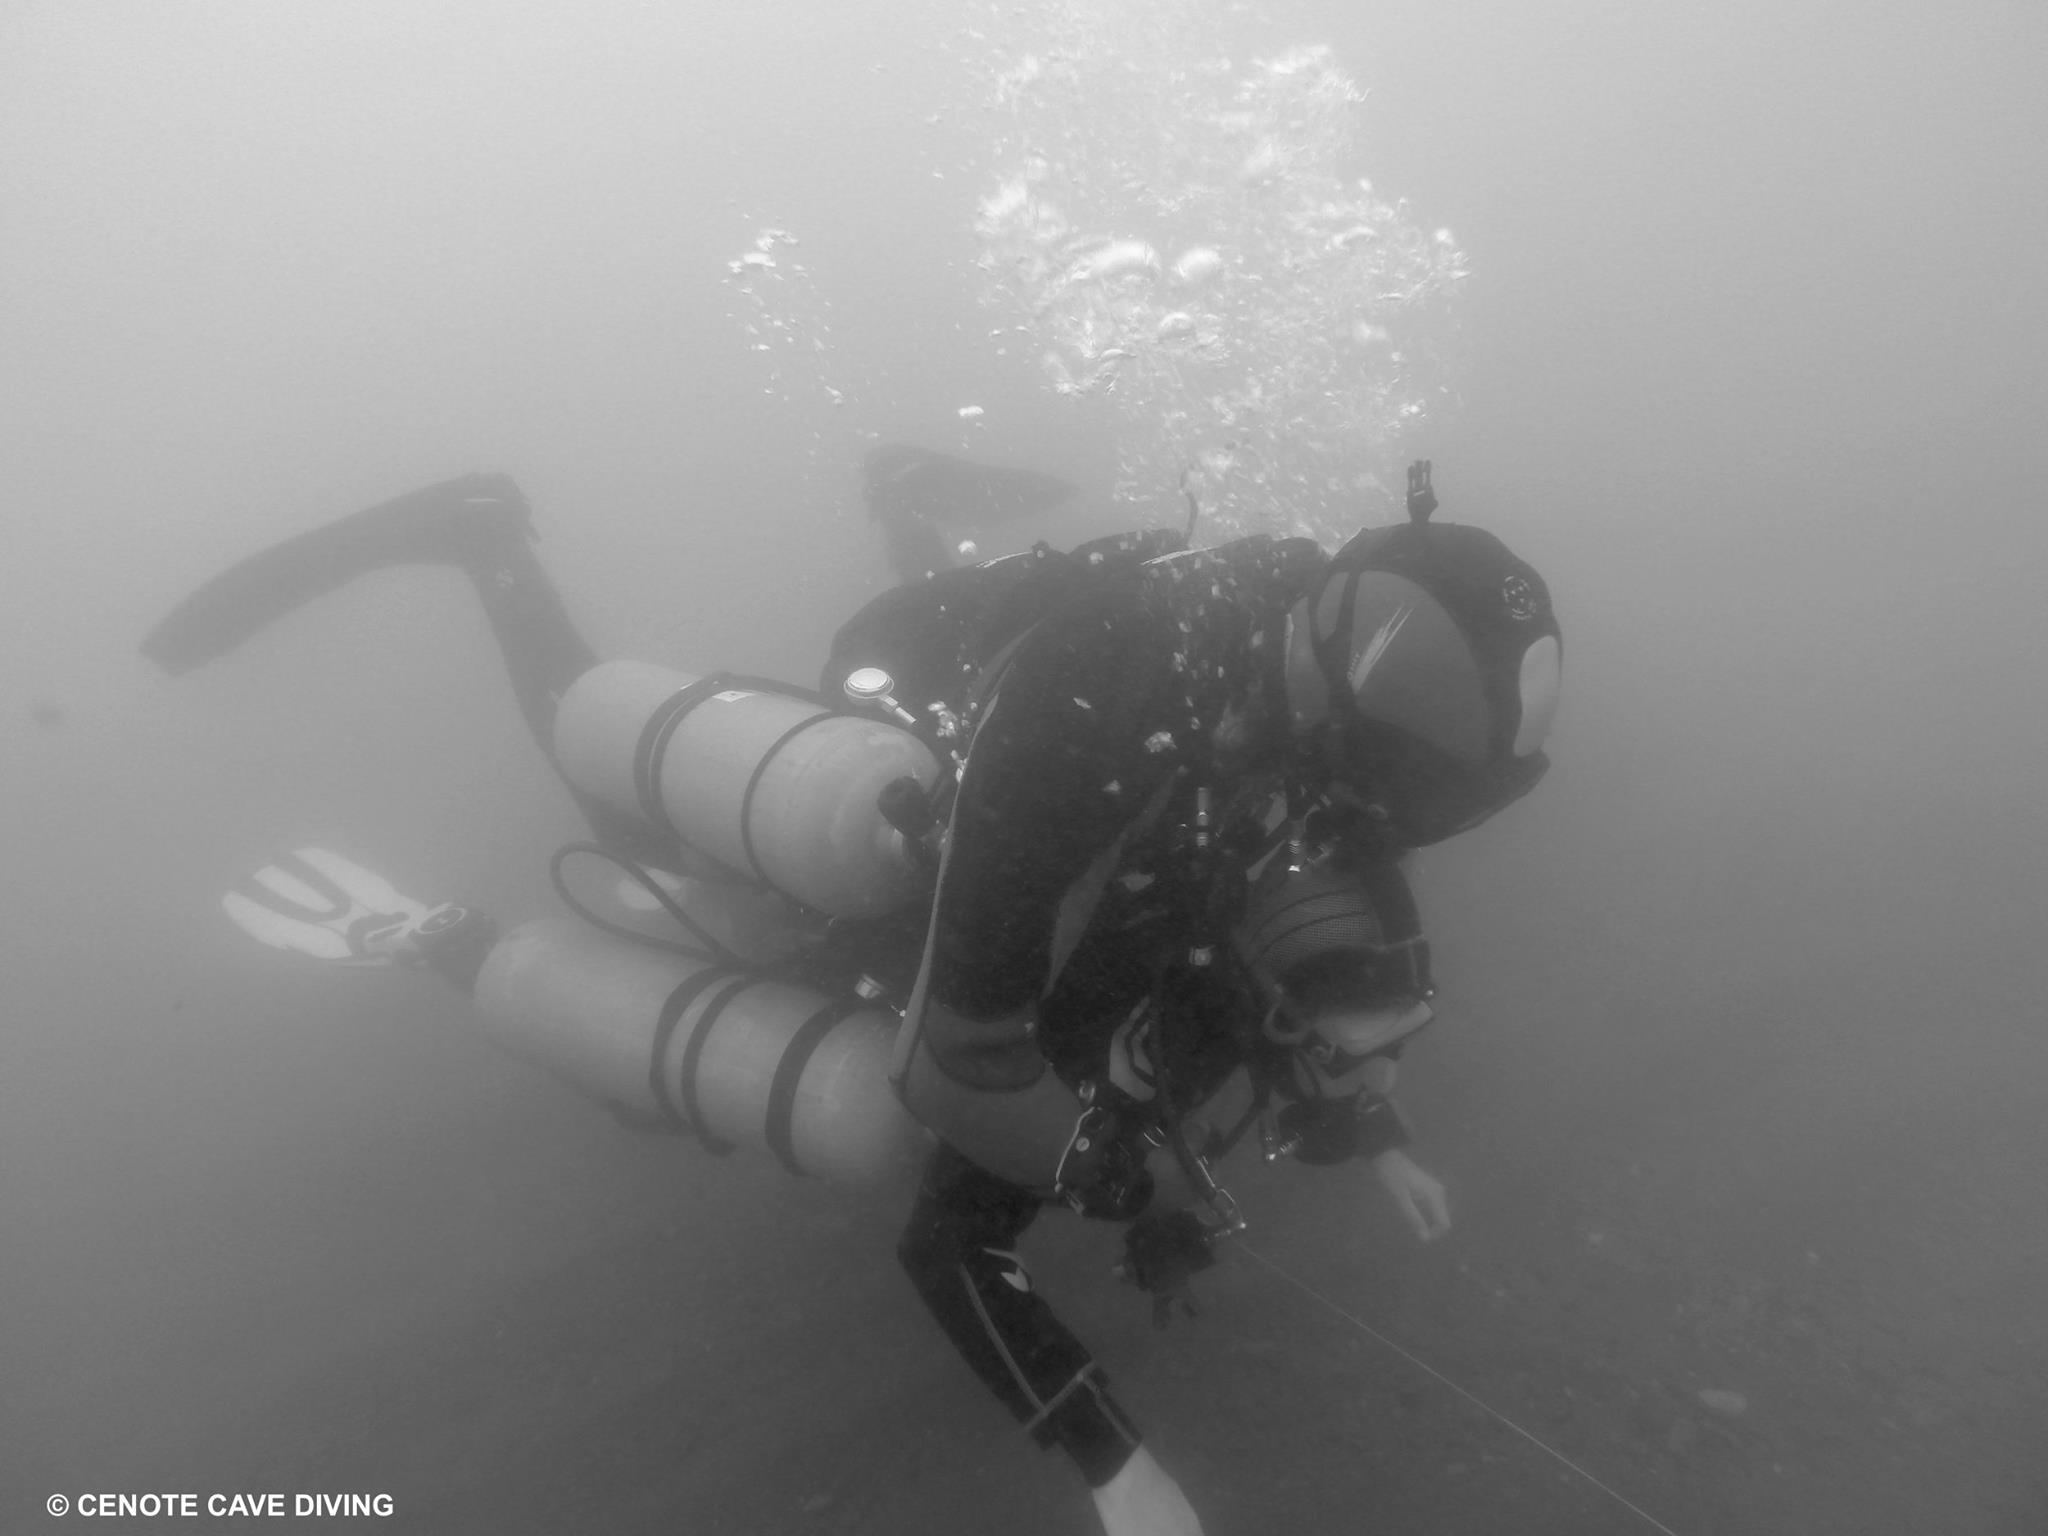 Rescue diver Sidemount TDI course